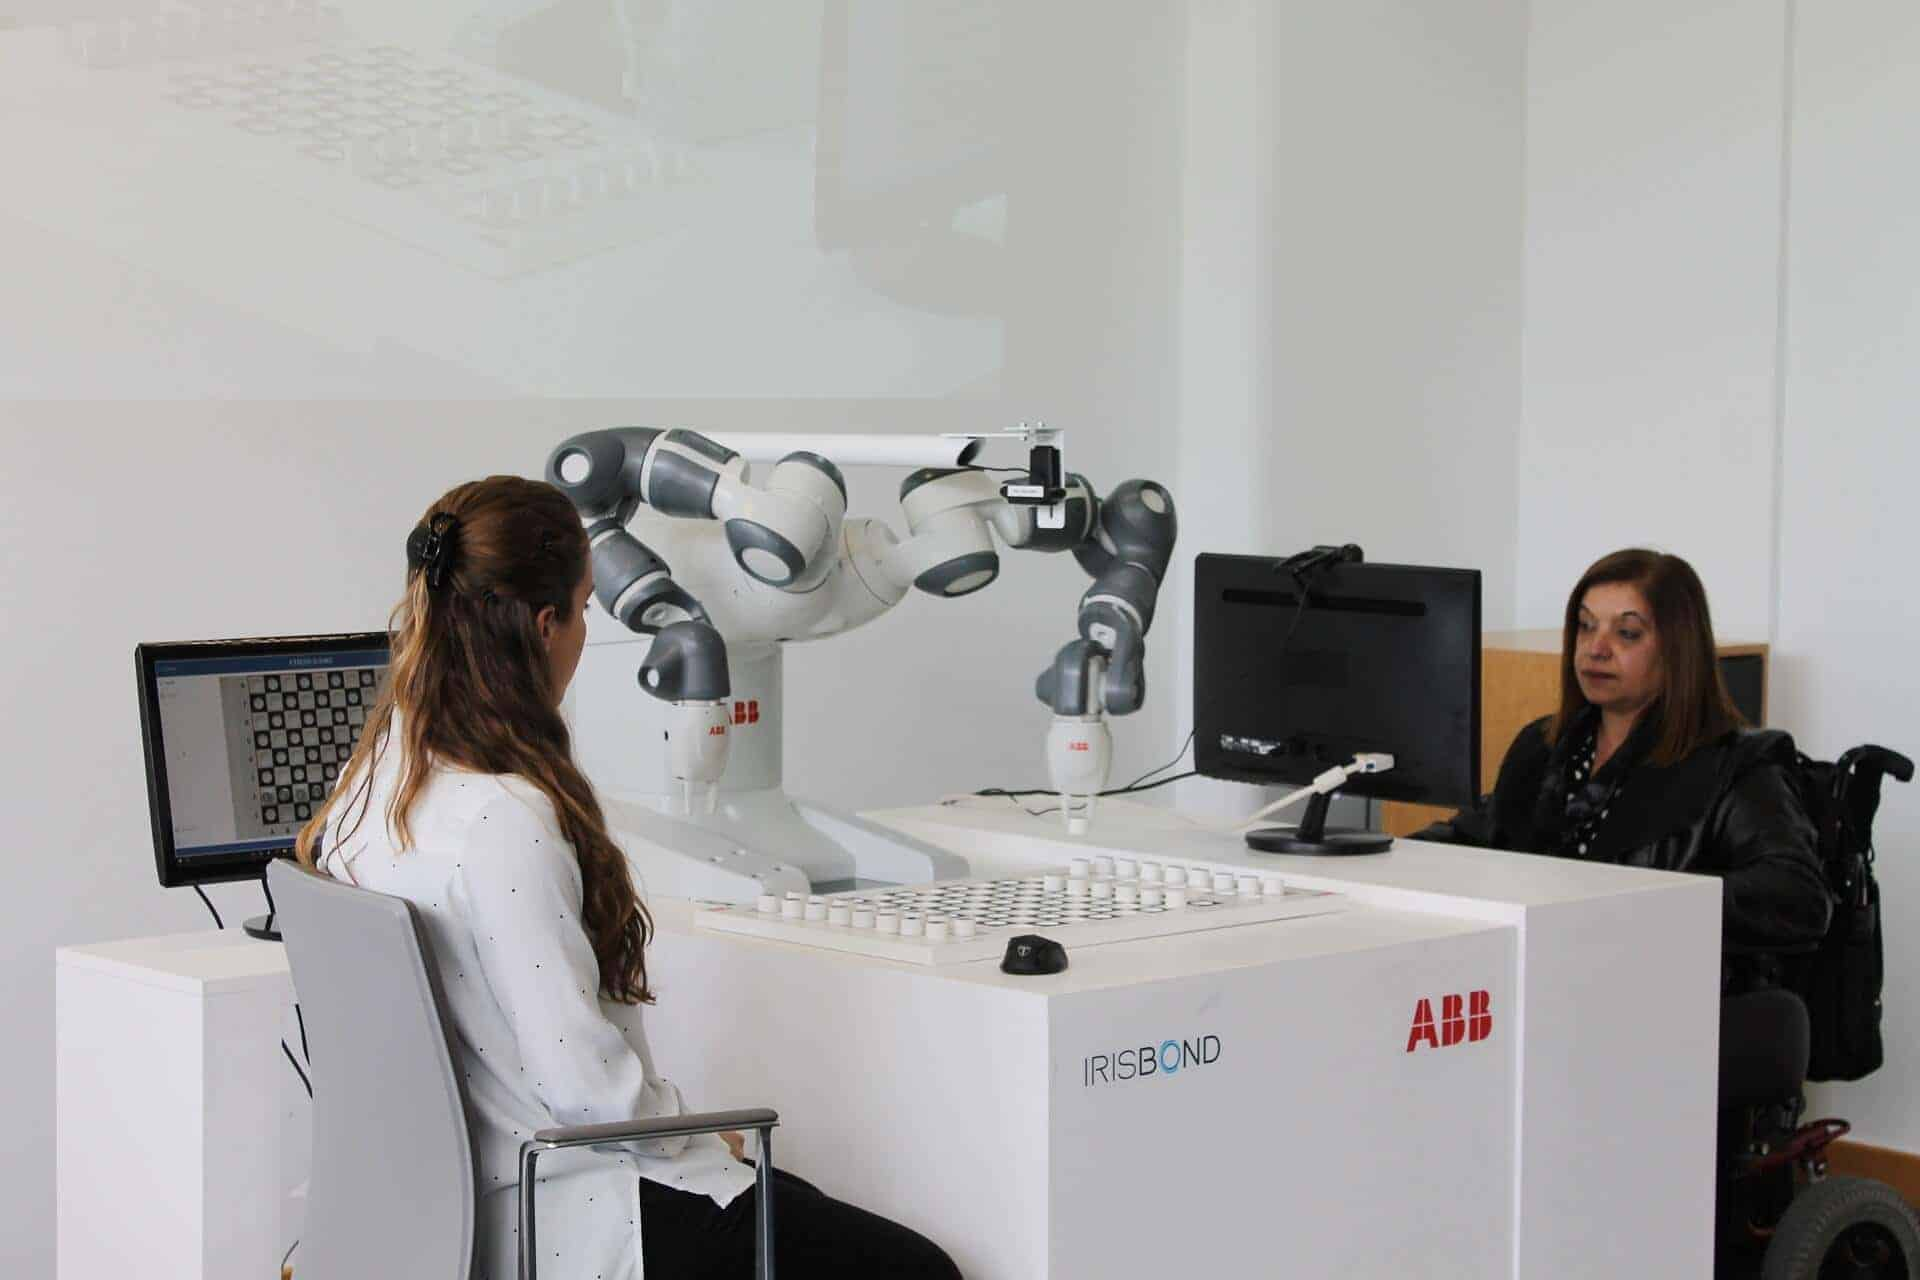 Irisbond Abb Yummi Robot eyetracking